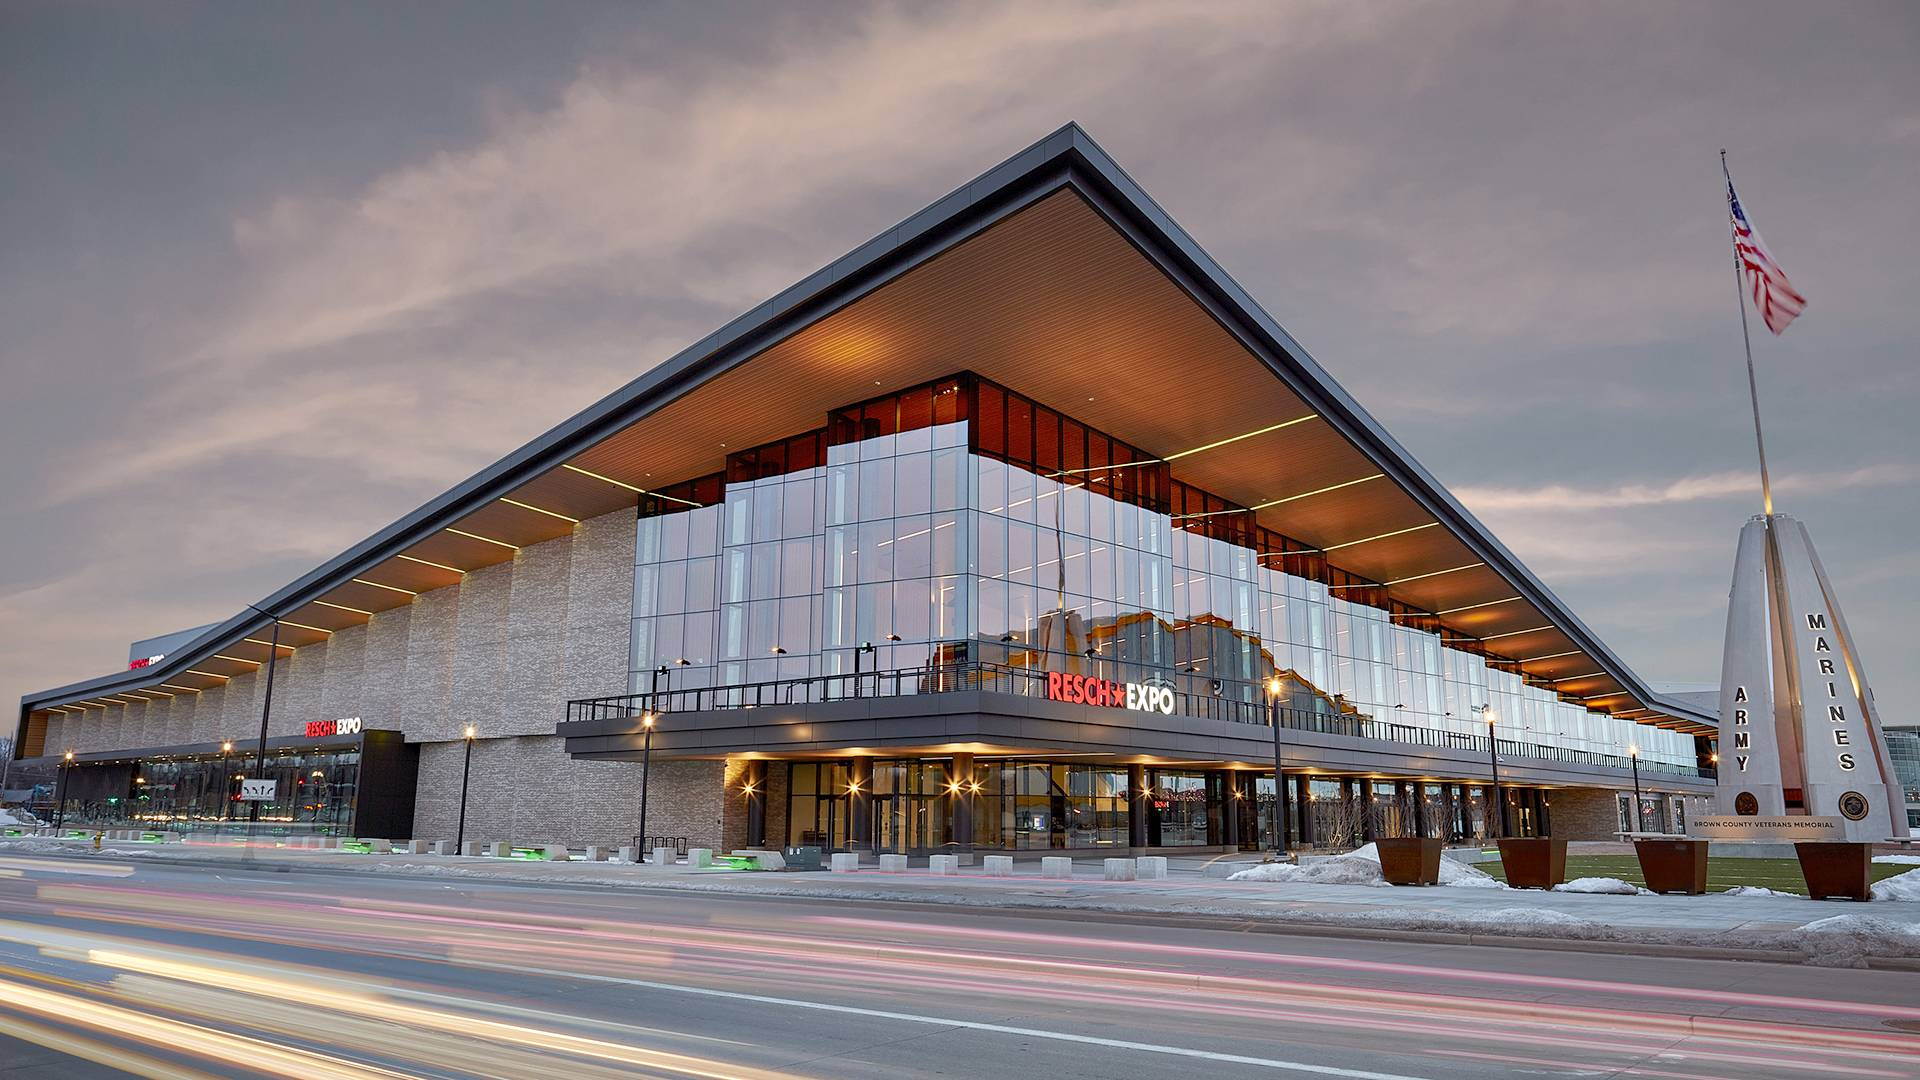 Green Bay's new 125,000 square foot, column-free exposition center is open!